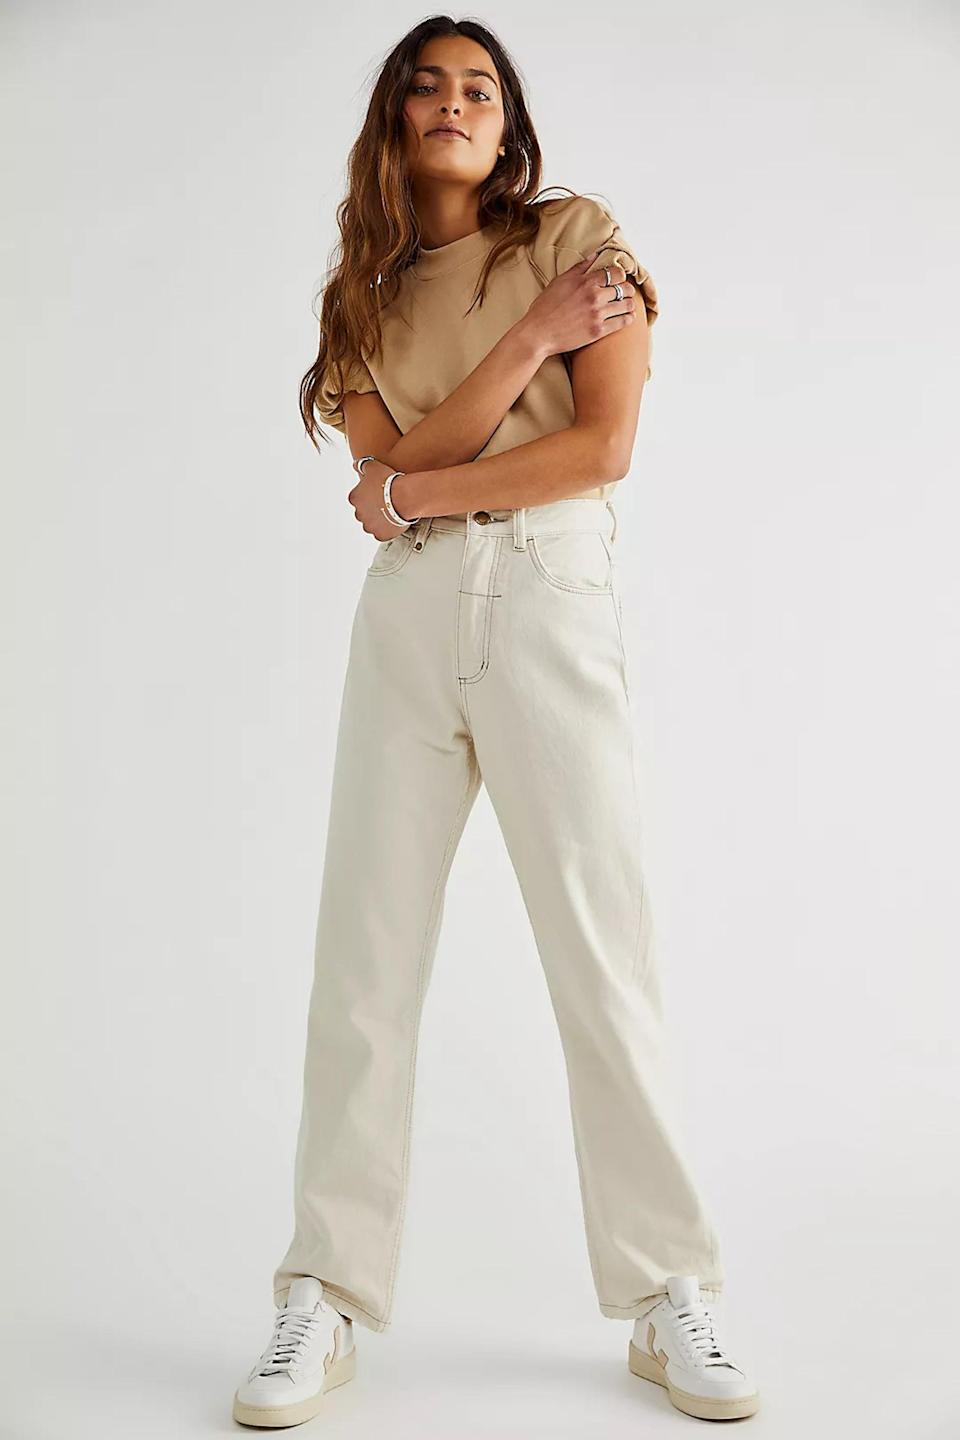 <p>The <span>Thrills Pulp Jeans</span> ($130) are made with at least 50 percent eco-conscious fiber and are not the brightest shade of white, if you'd rather go for something more muted and natural.</p>